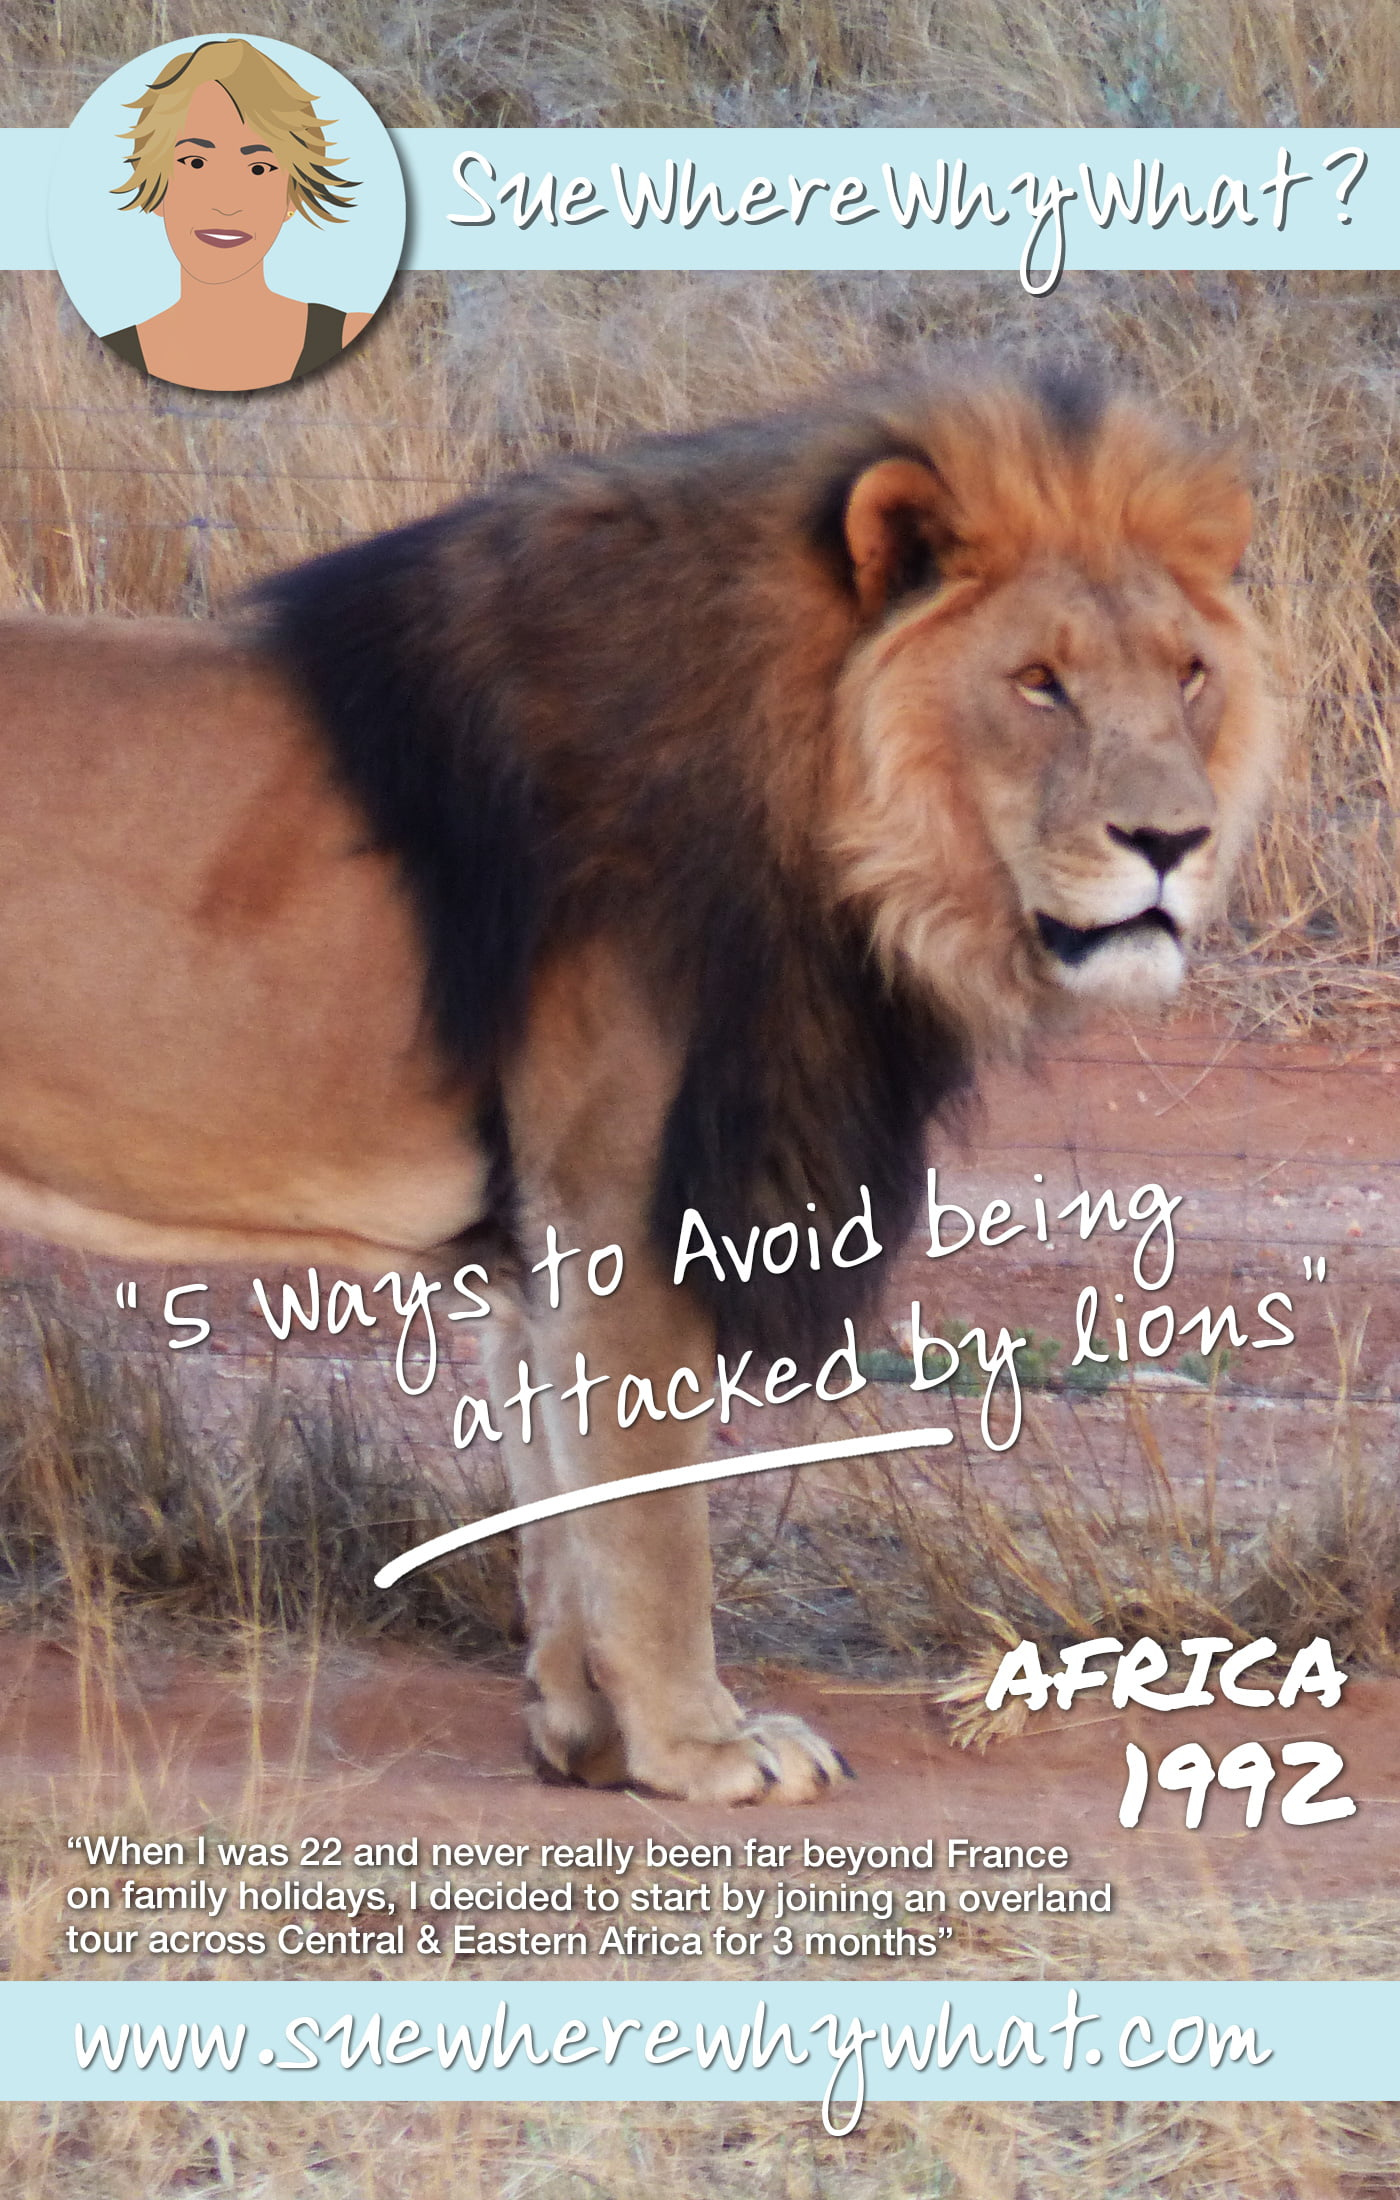 5 Ways to avoid being attacked by Lions!